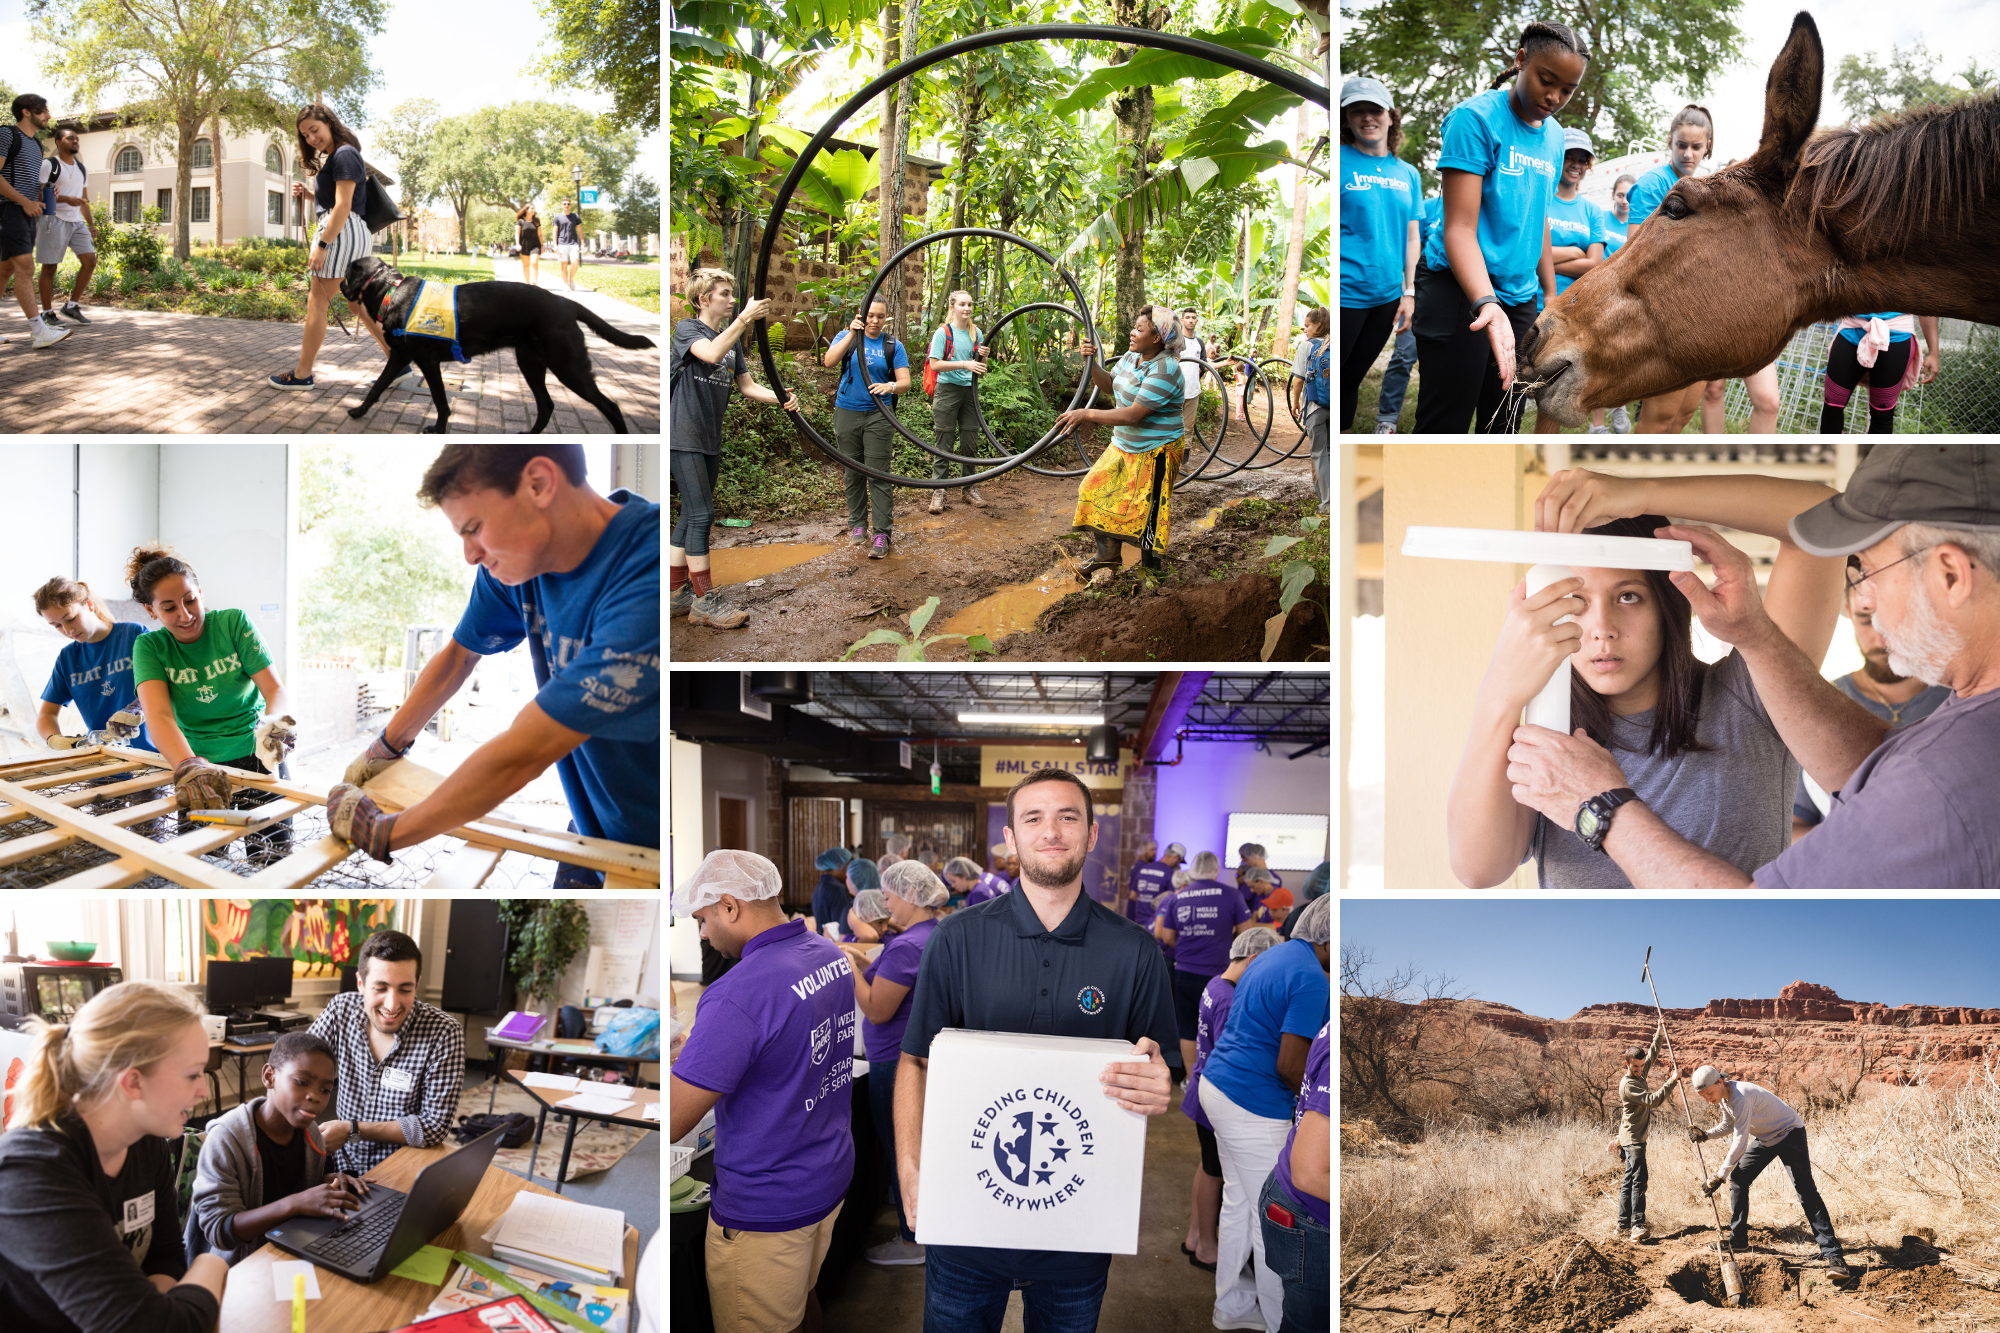 A grid of images depicting service learning experiences at Rollins College.